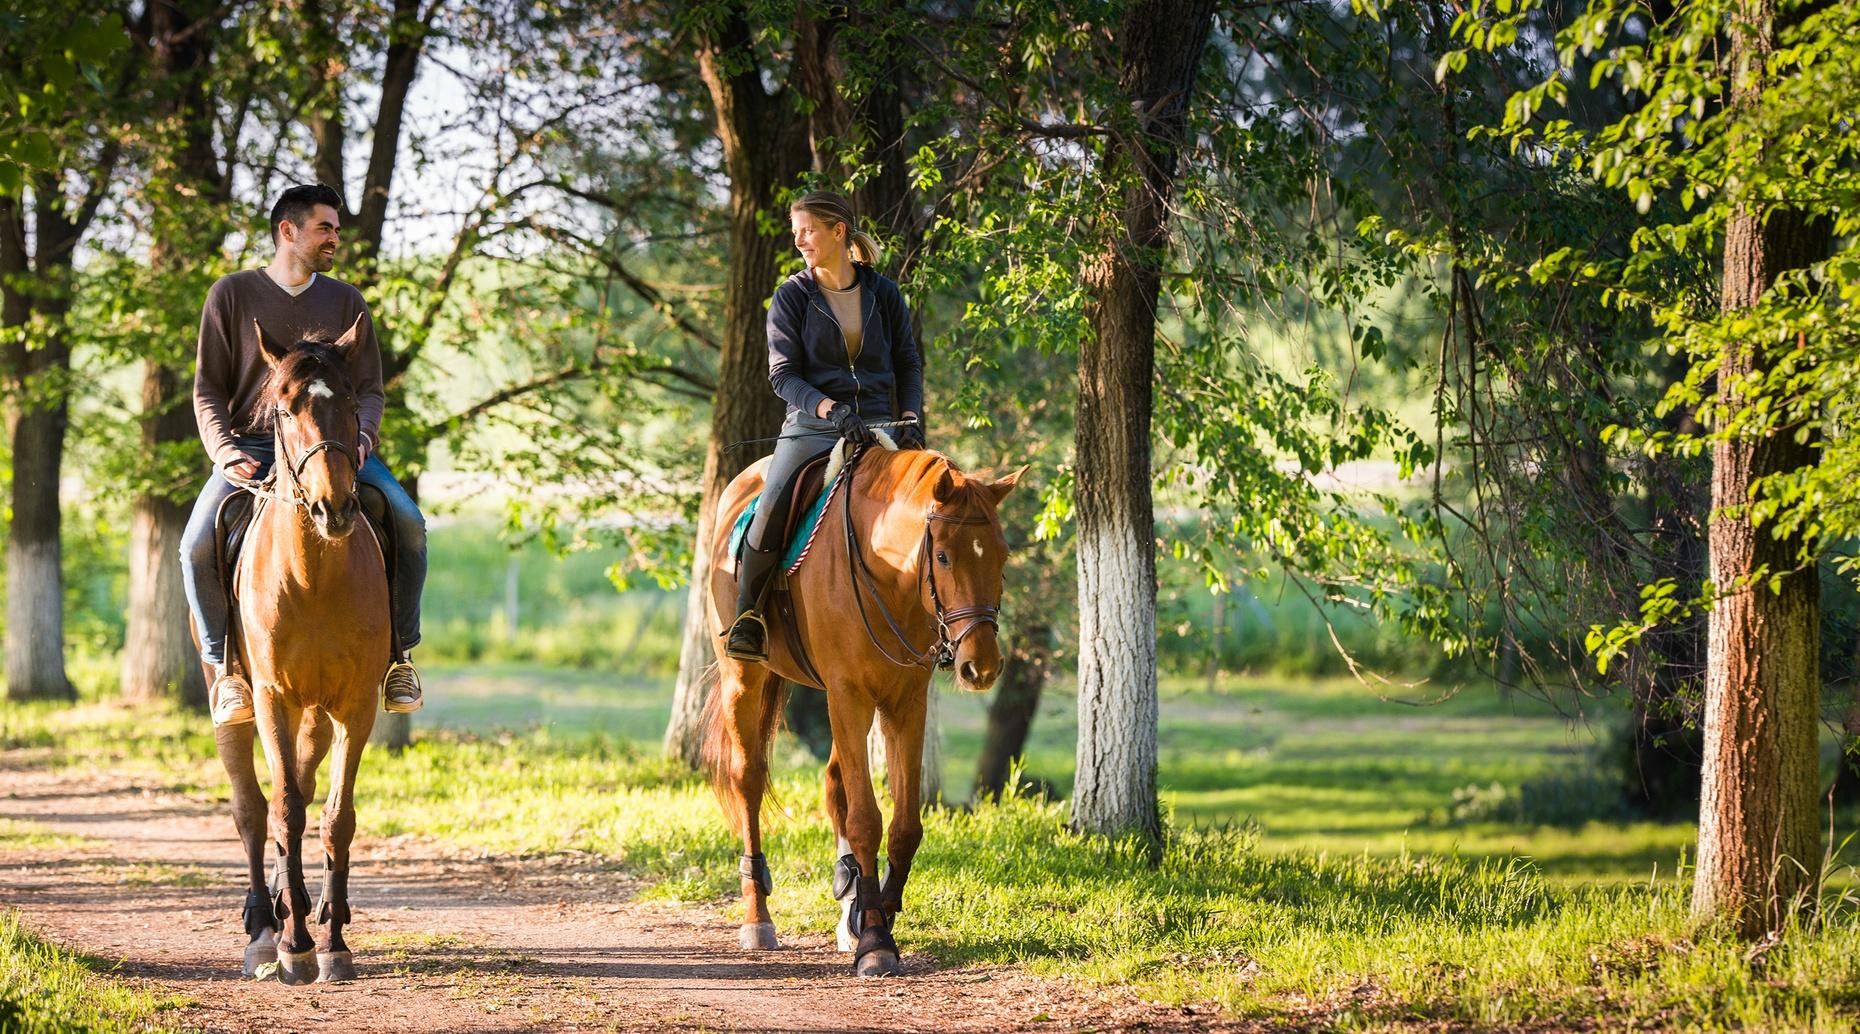 Private Horseback Rides in St. Clair